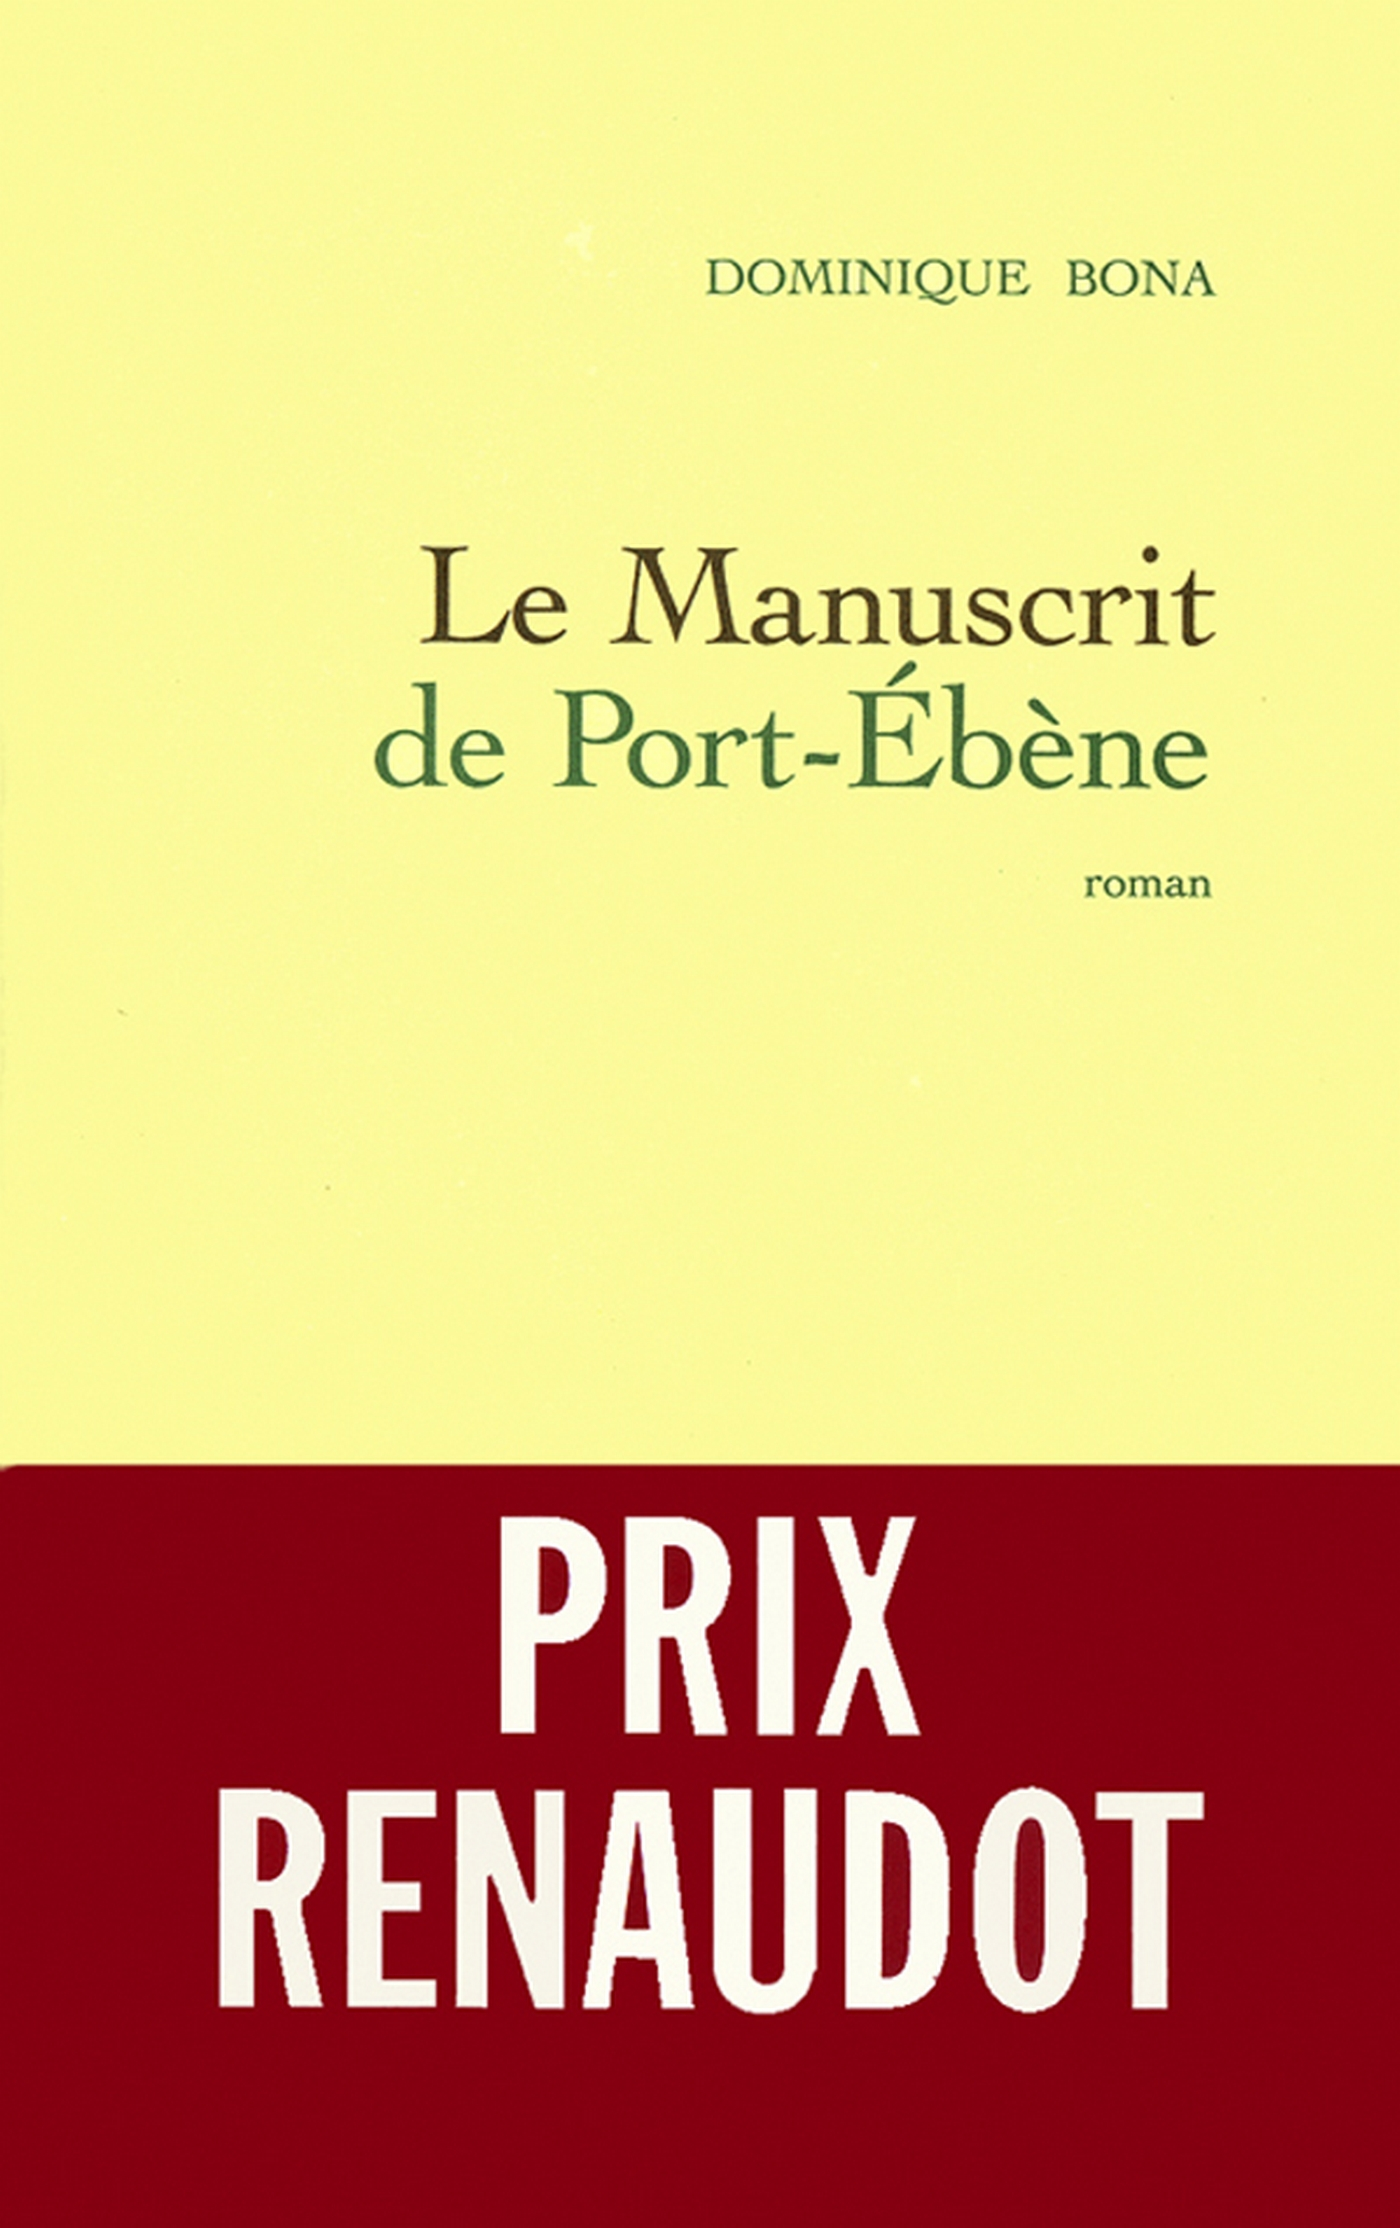 Le manuscrit de Port-Ebène